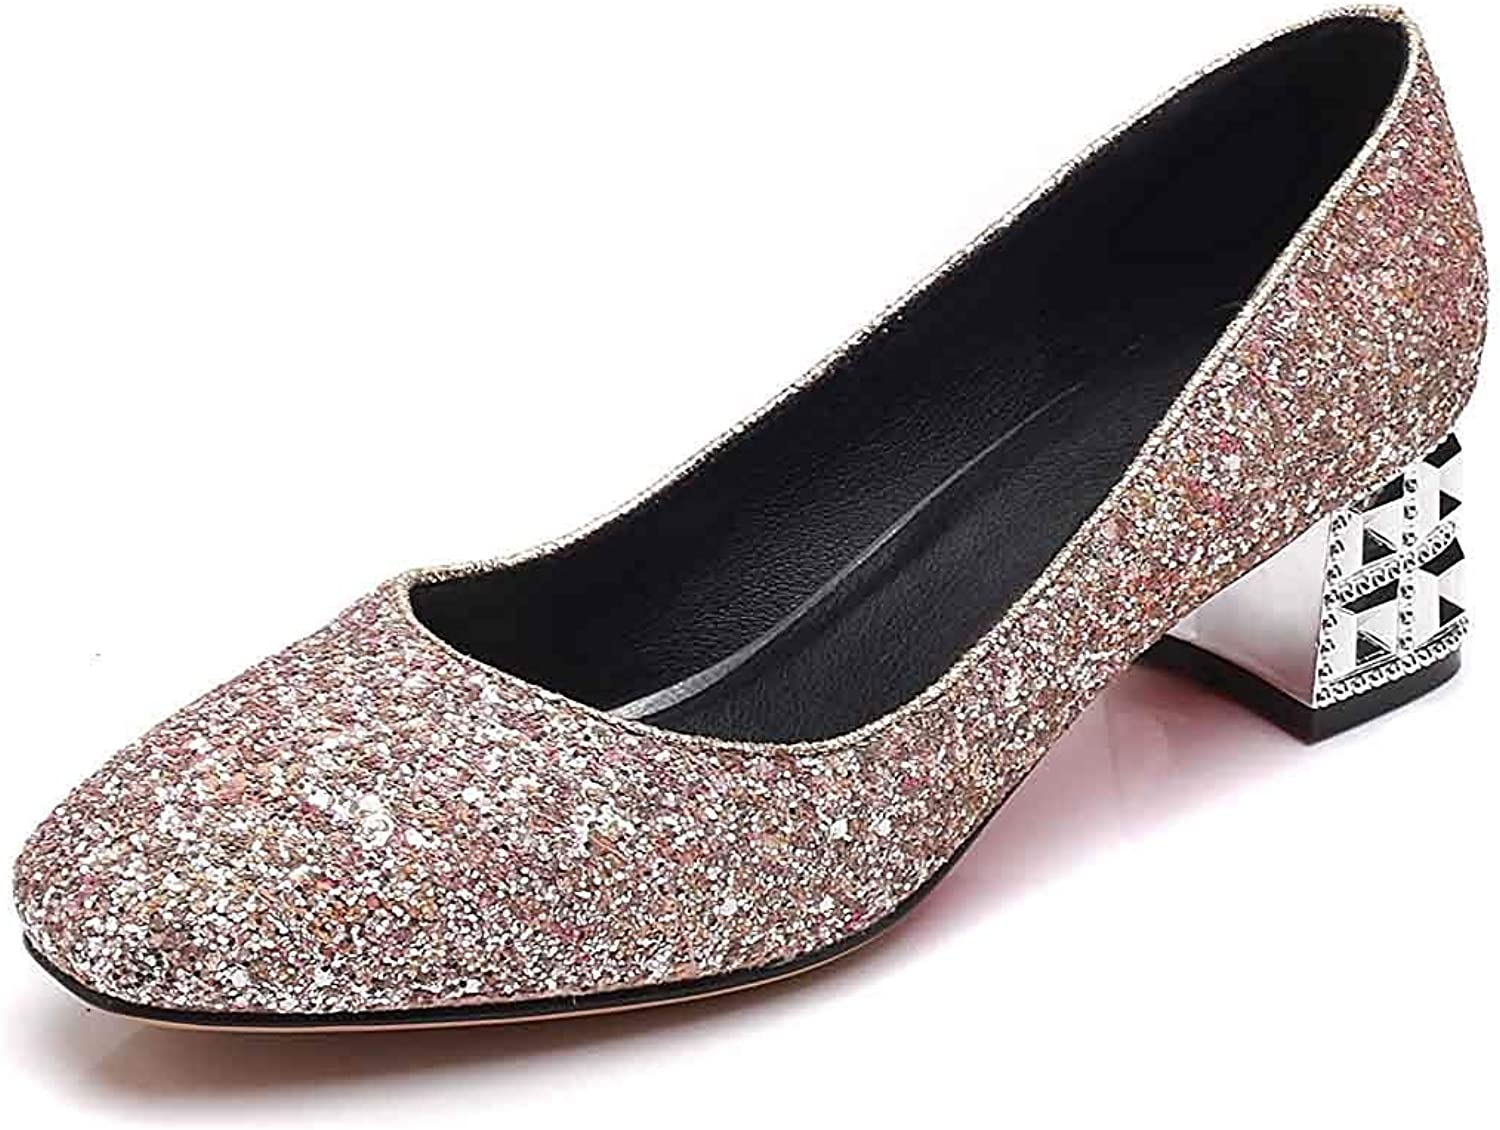 Women's Sequined Square Toe Pumps shoes - Mid Chunky Heels - Low Cut Bling Glitter Slip On